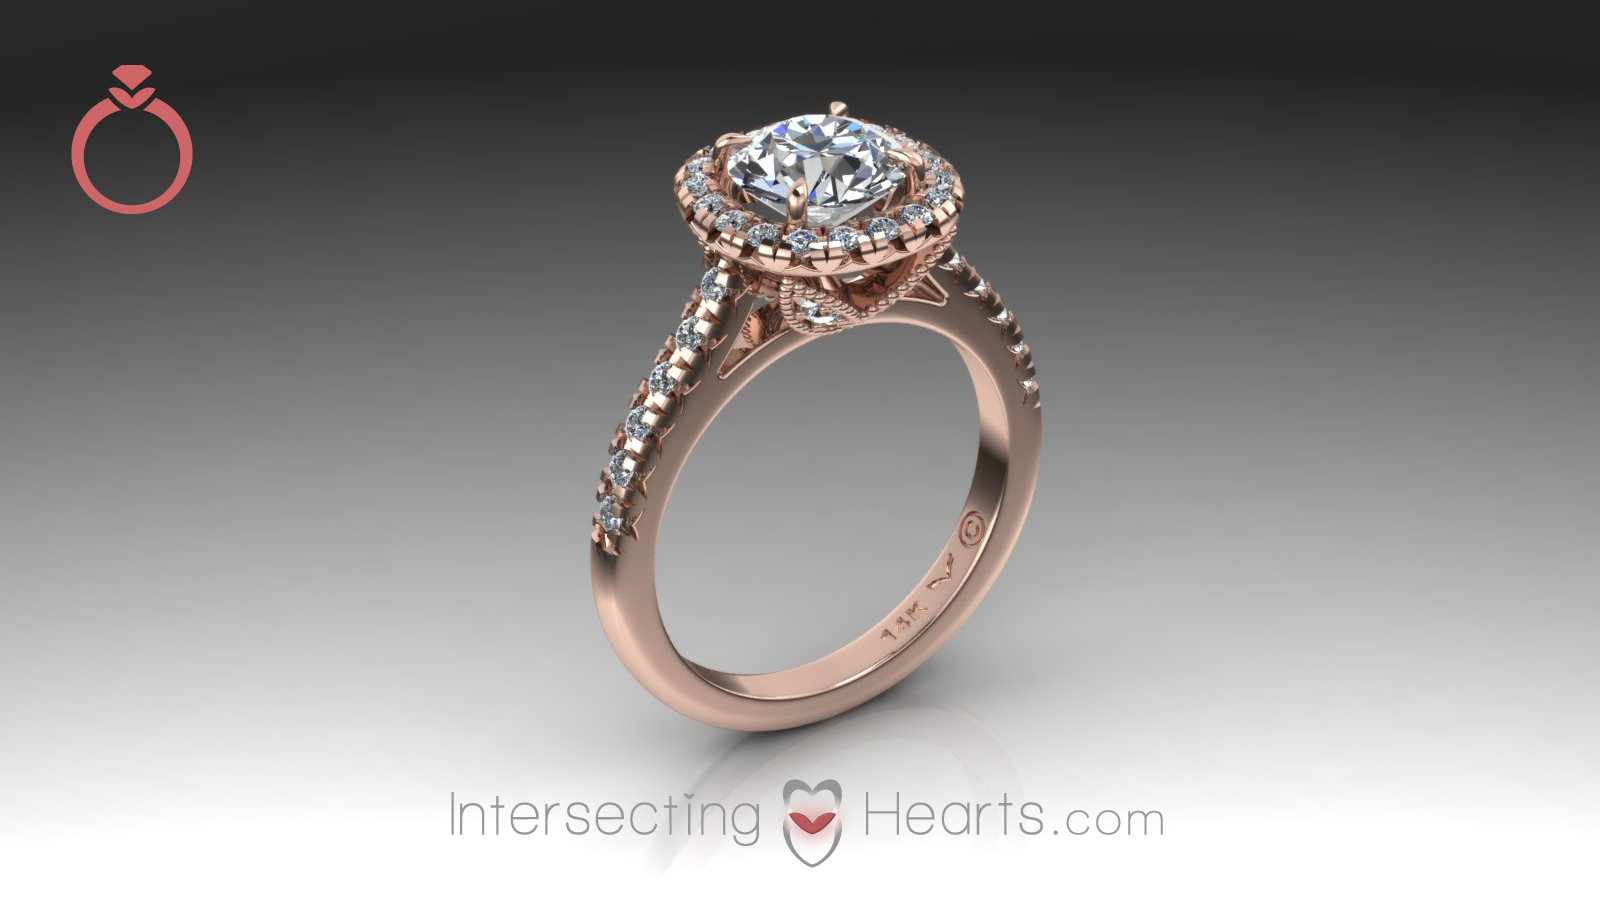 ring from the Intersecting Hearts collection